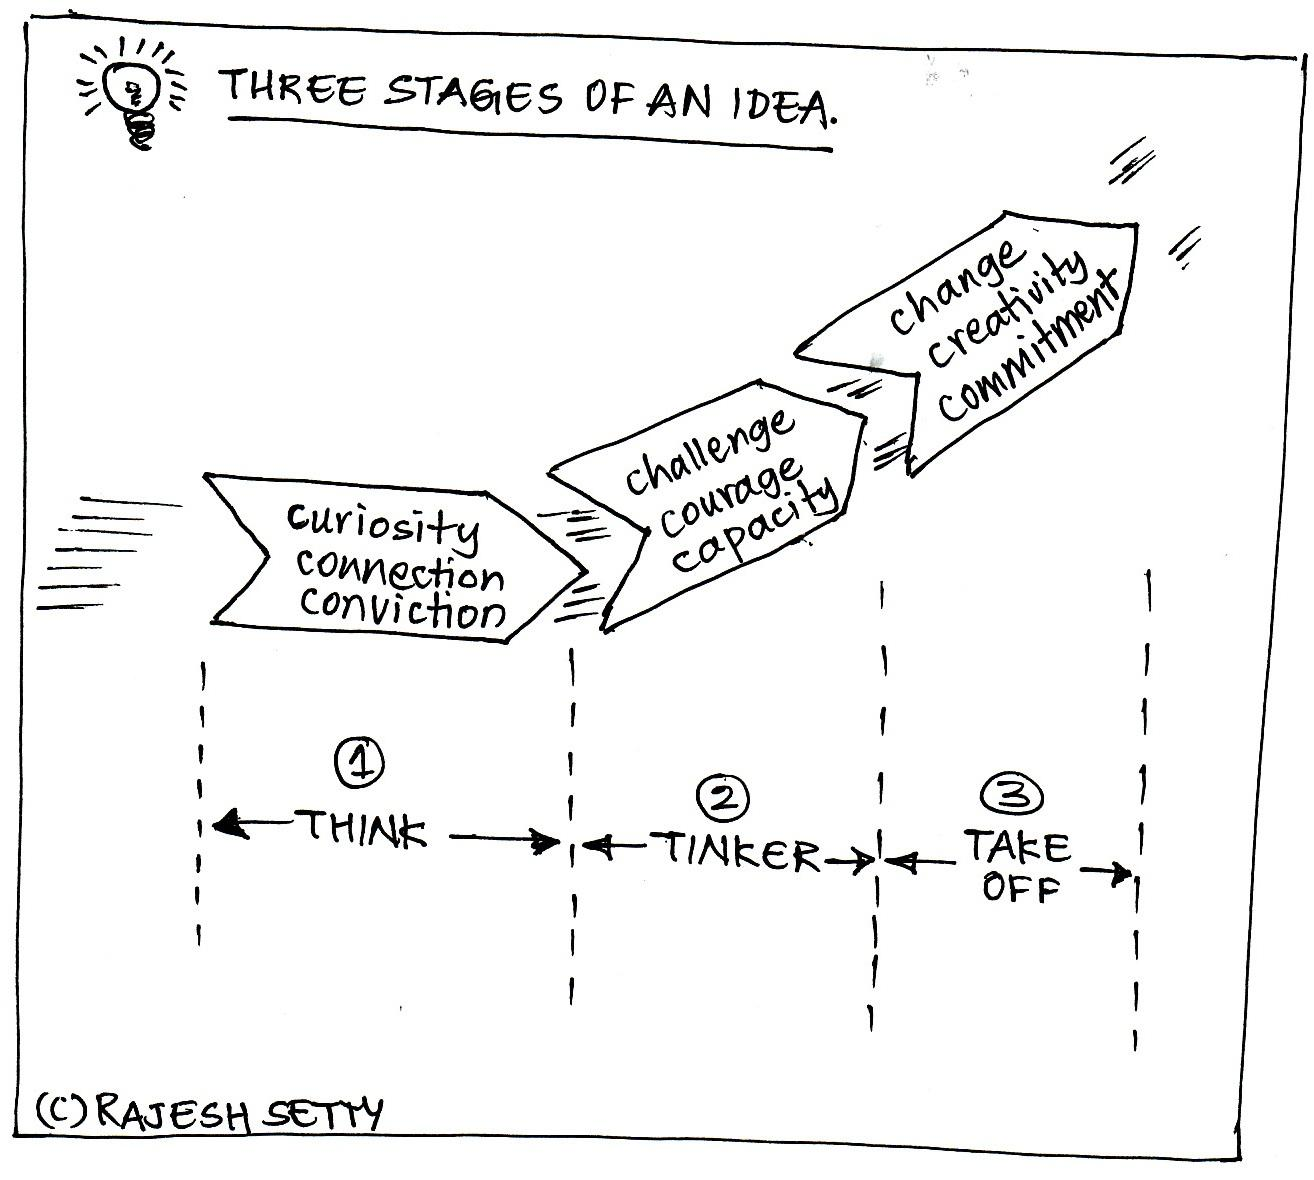 idea-stages